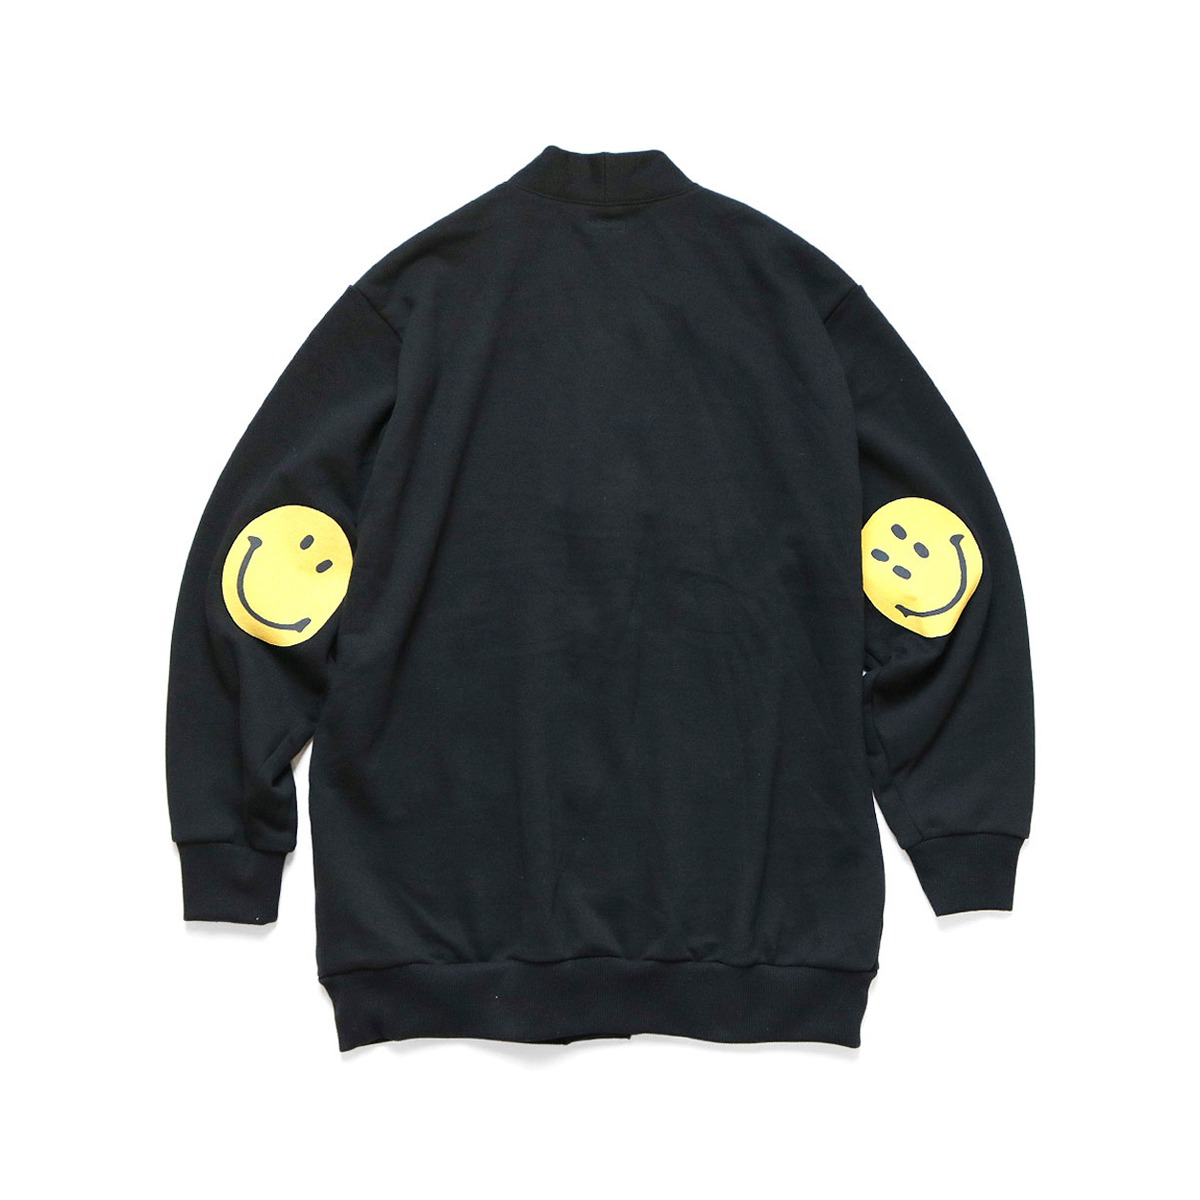 [KAPITAL] ECO FLEECY KNIT CARDIGAN (ELBOW SMILE) 'BLACK'